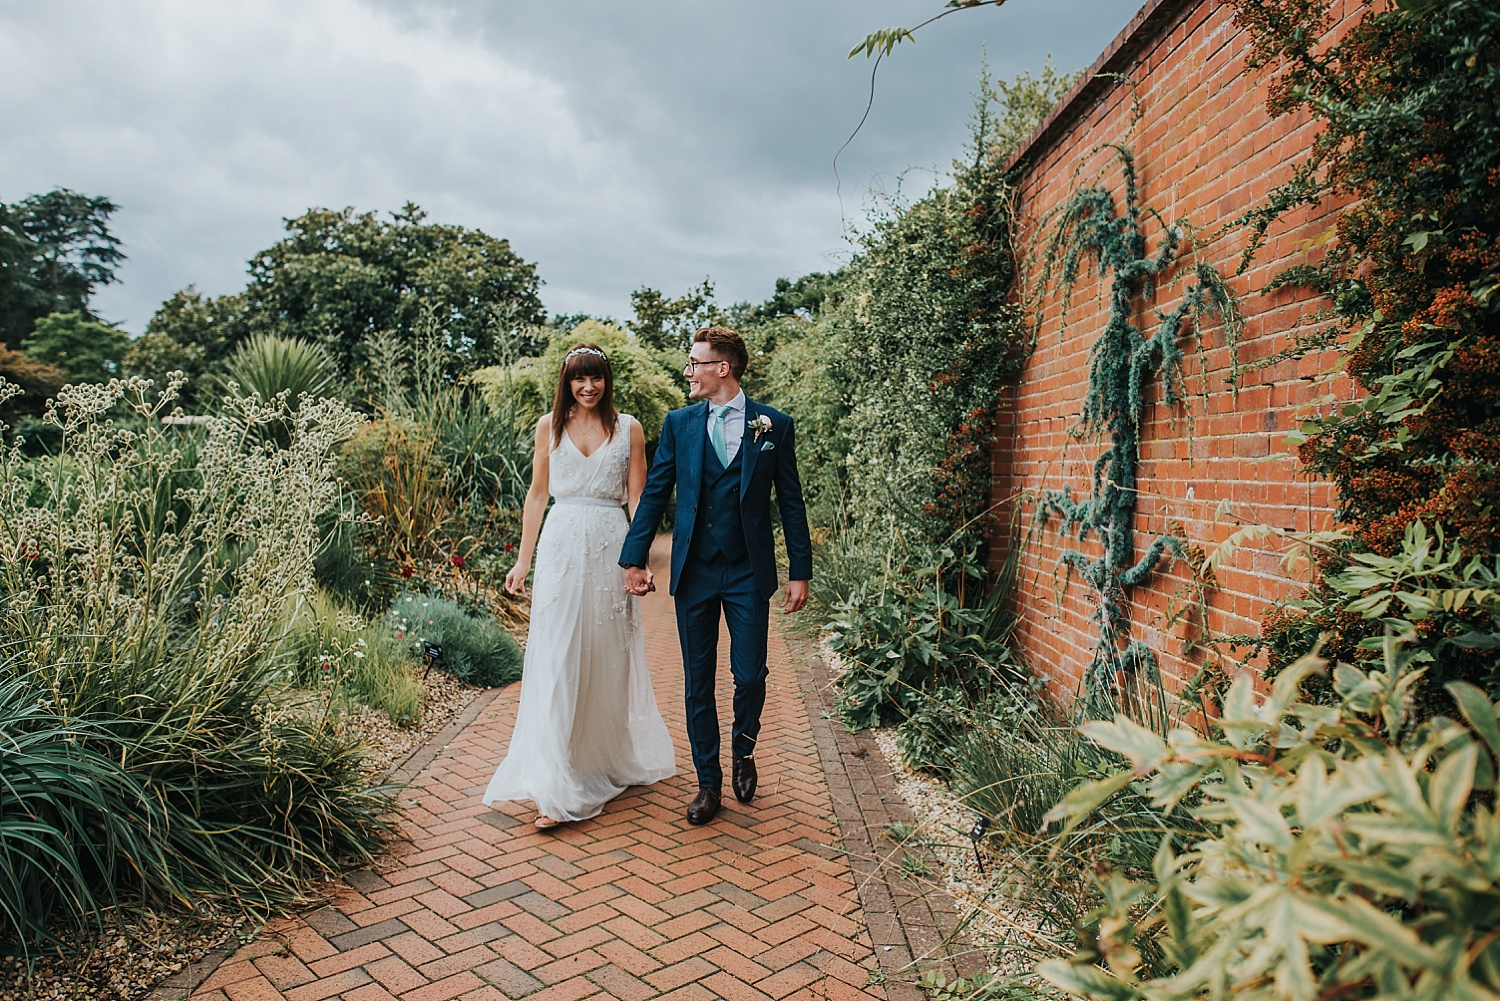 bride and groom walking hand in hand in walled garden RHS Wisley